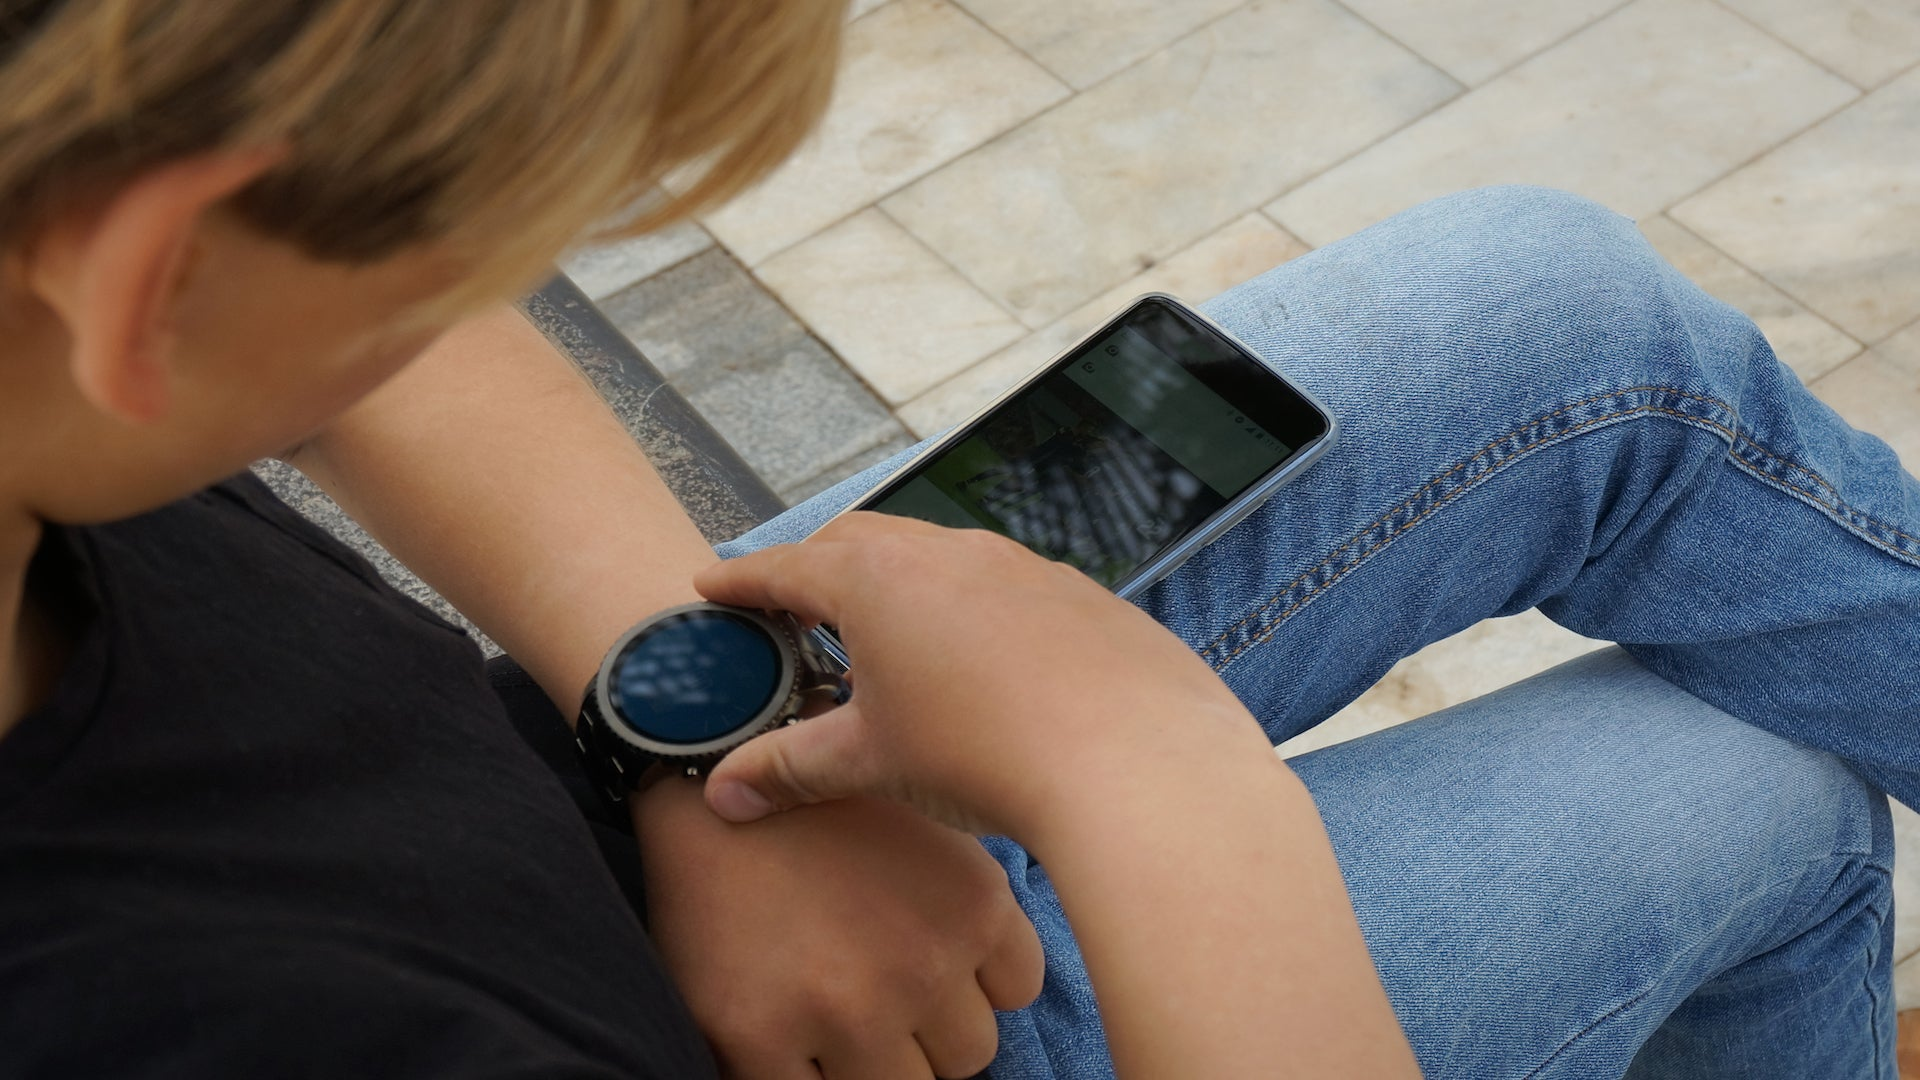 KID'S-SMART-WATCHES